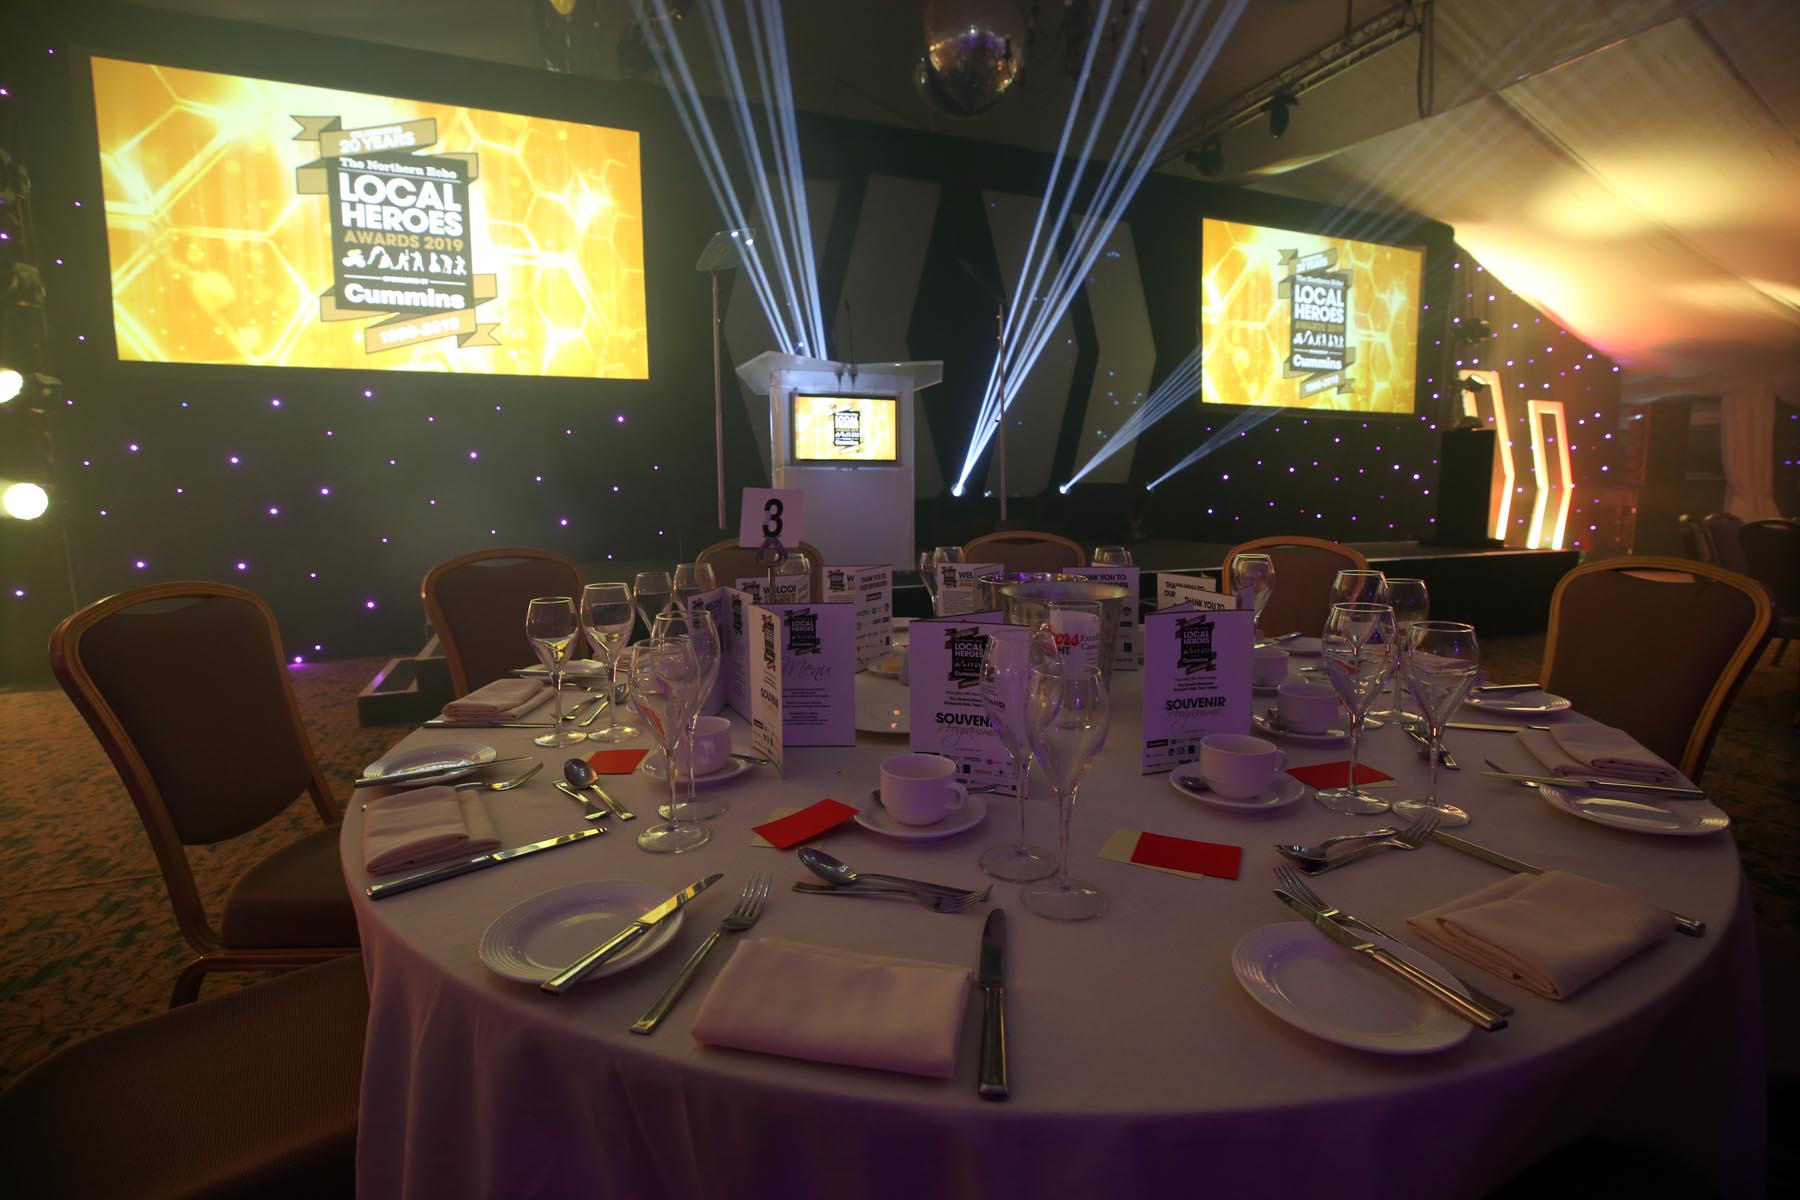 The 20th Local Heroes Awards